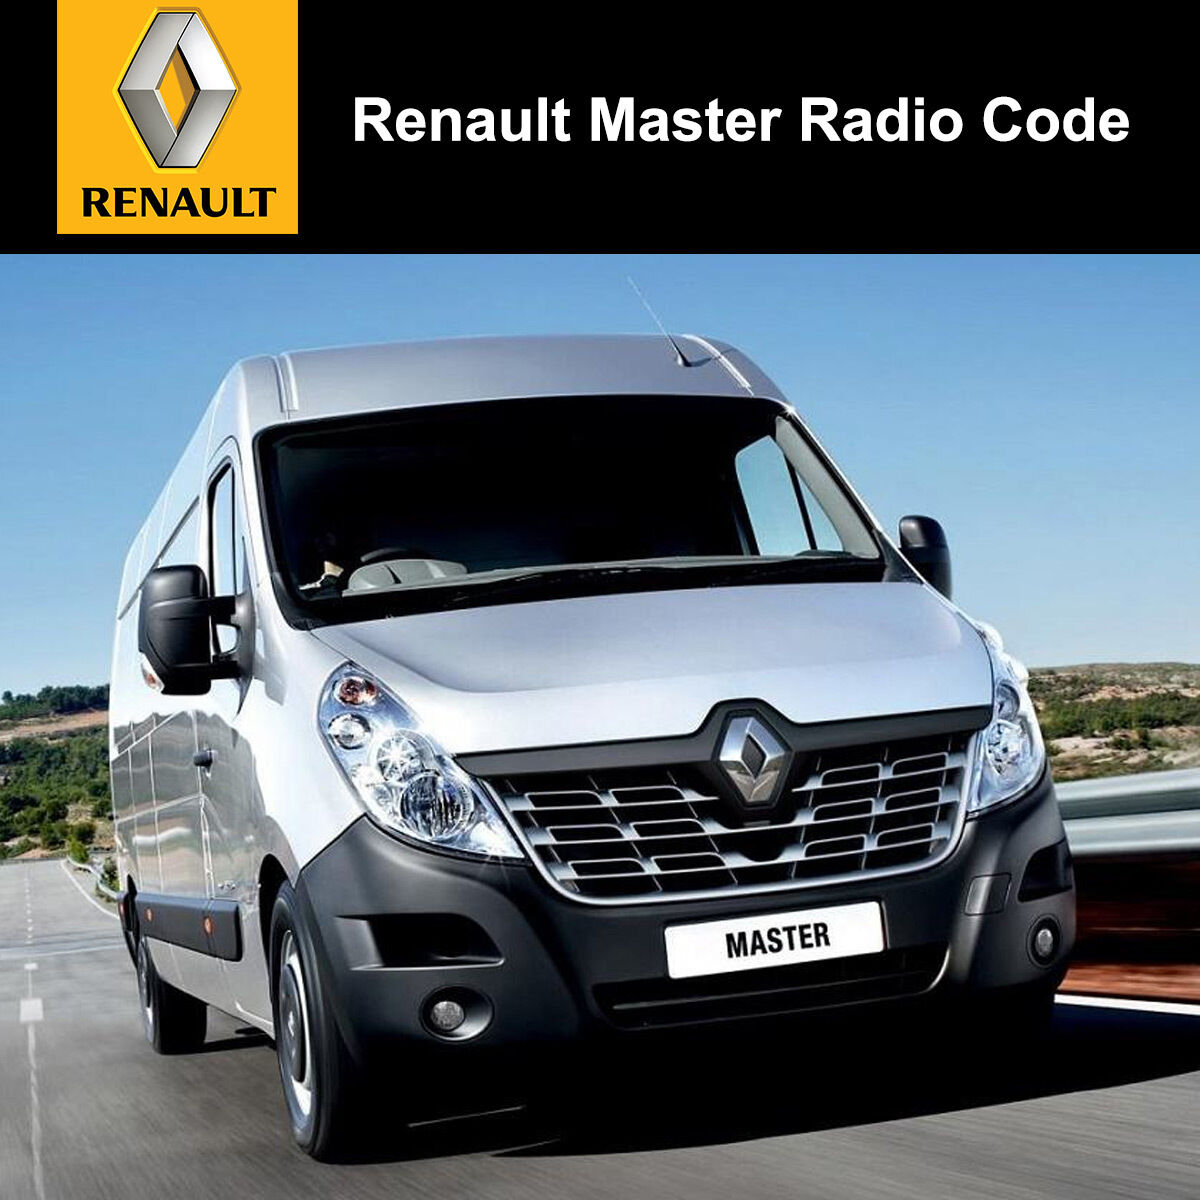 Details about Renault Master Radio Code Stereo Decode Car Unlock Fast  Service UK All Vehicles